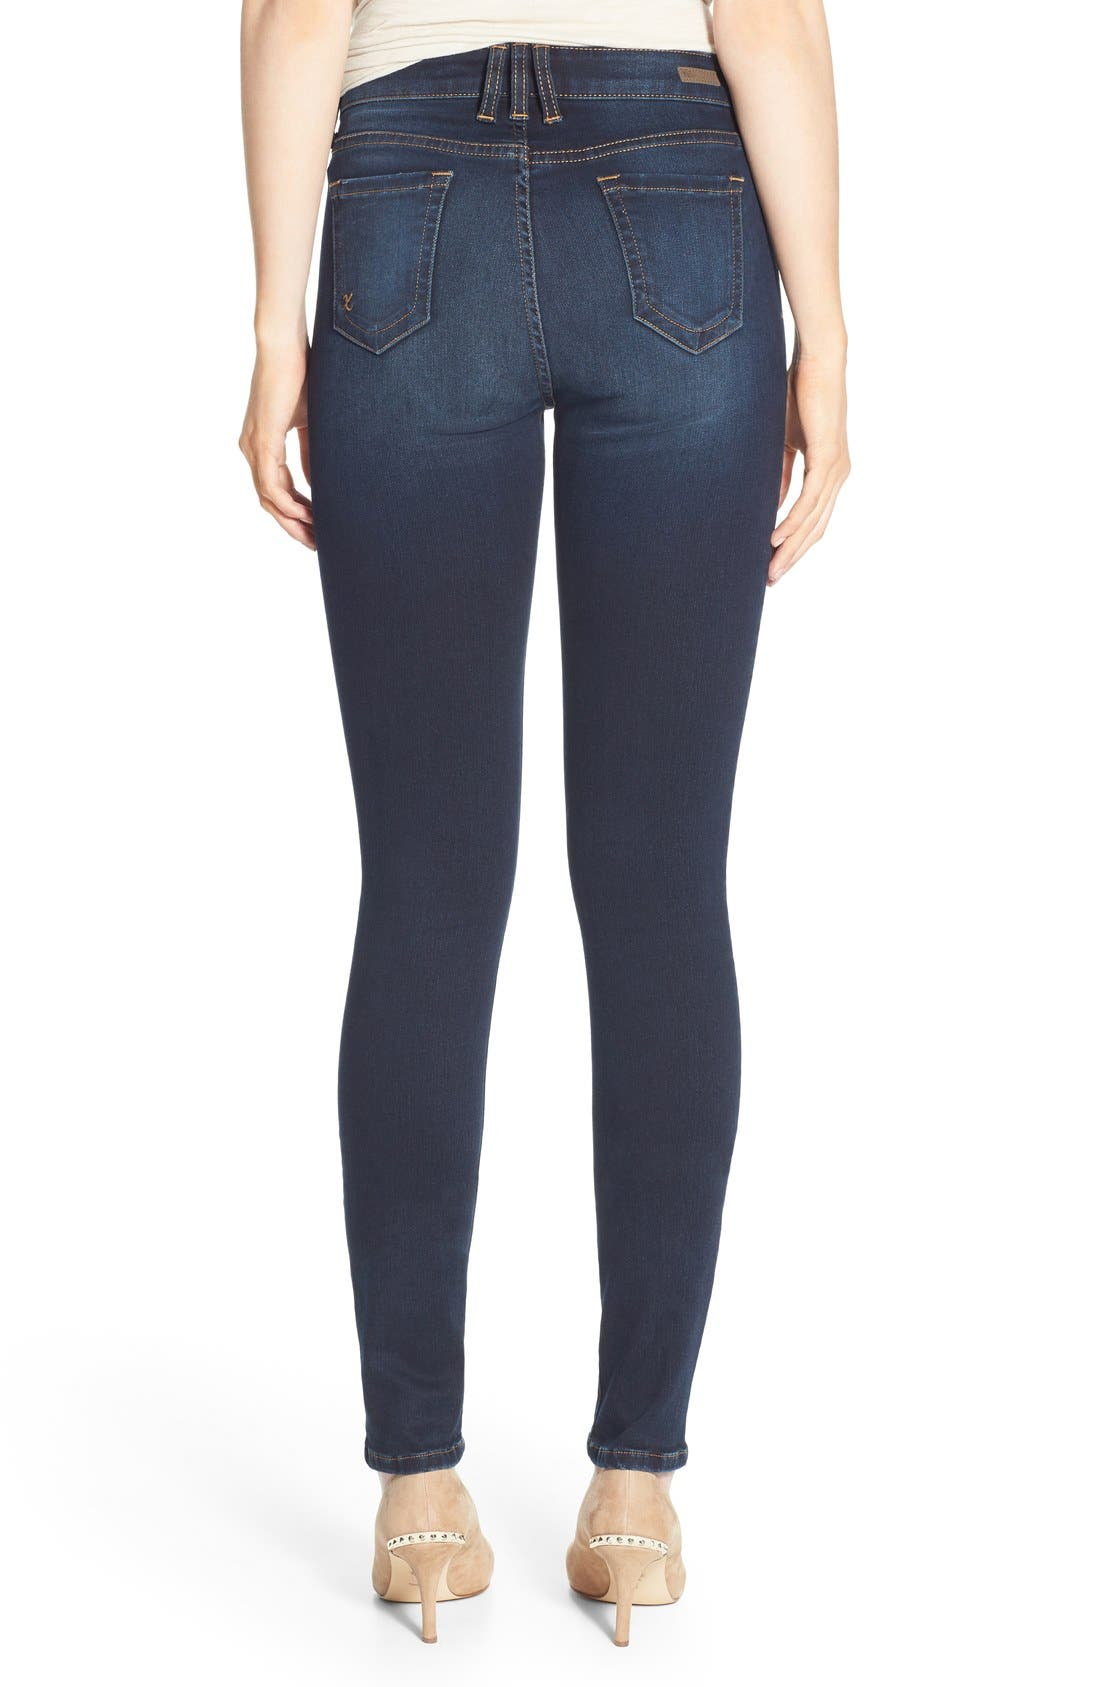 Alternate Image 2  - KUT from the Kloth 'Diana' Stretch Skinny Jeans (Brisk)